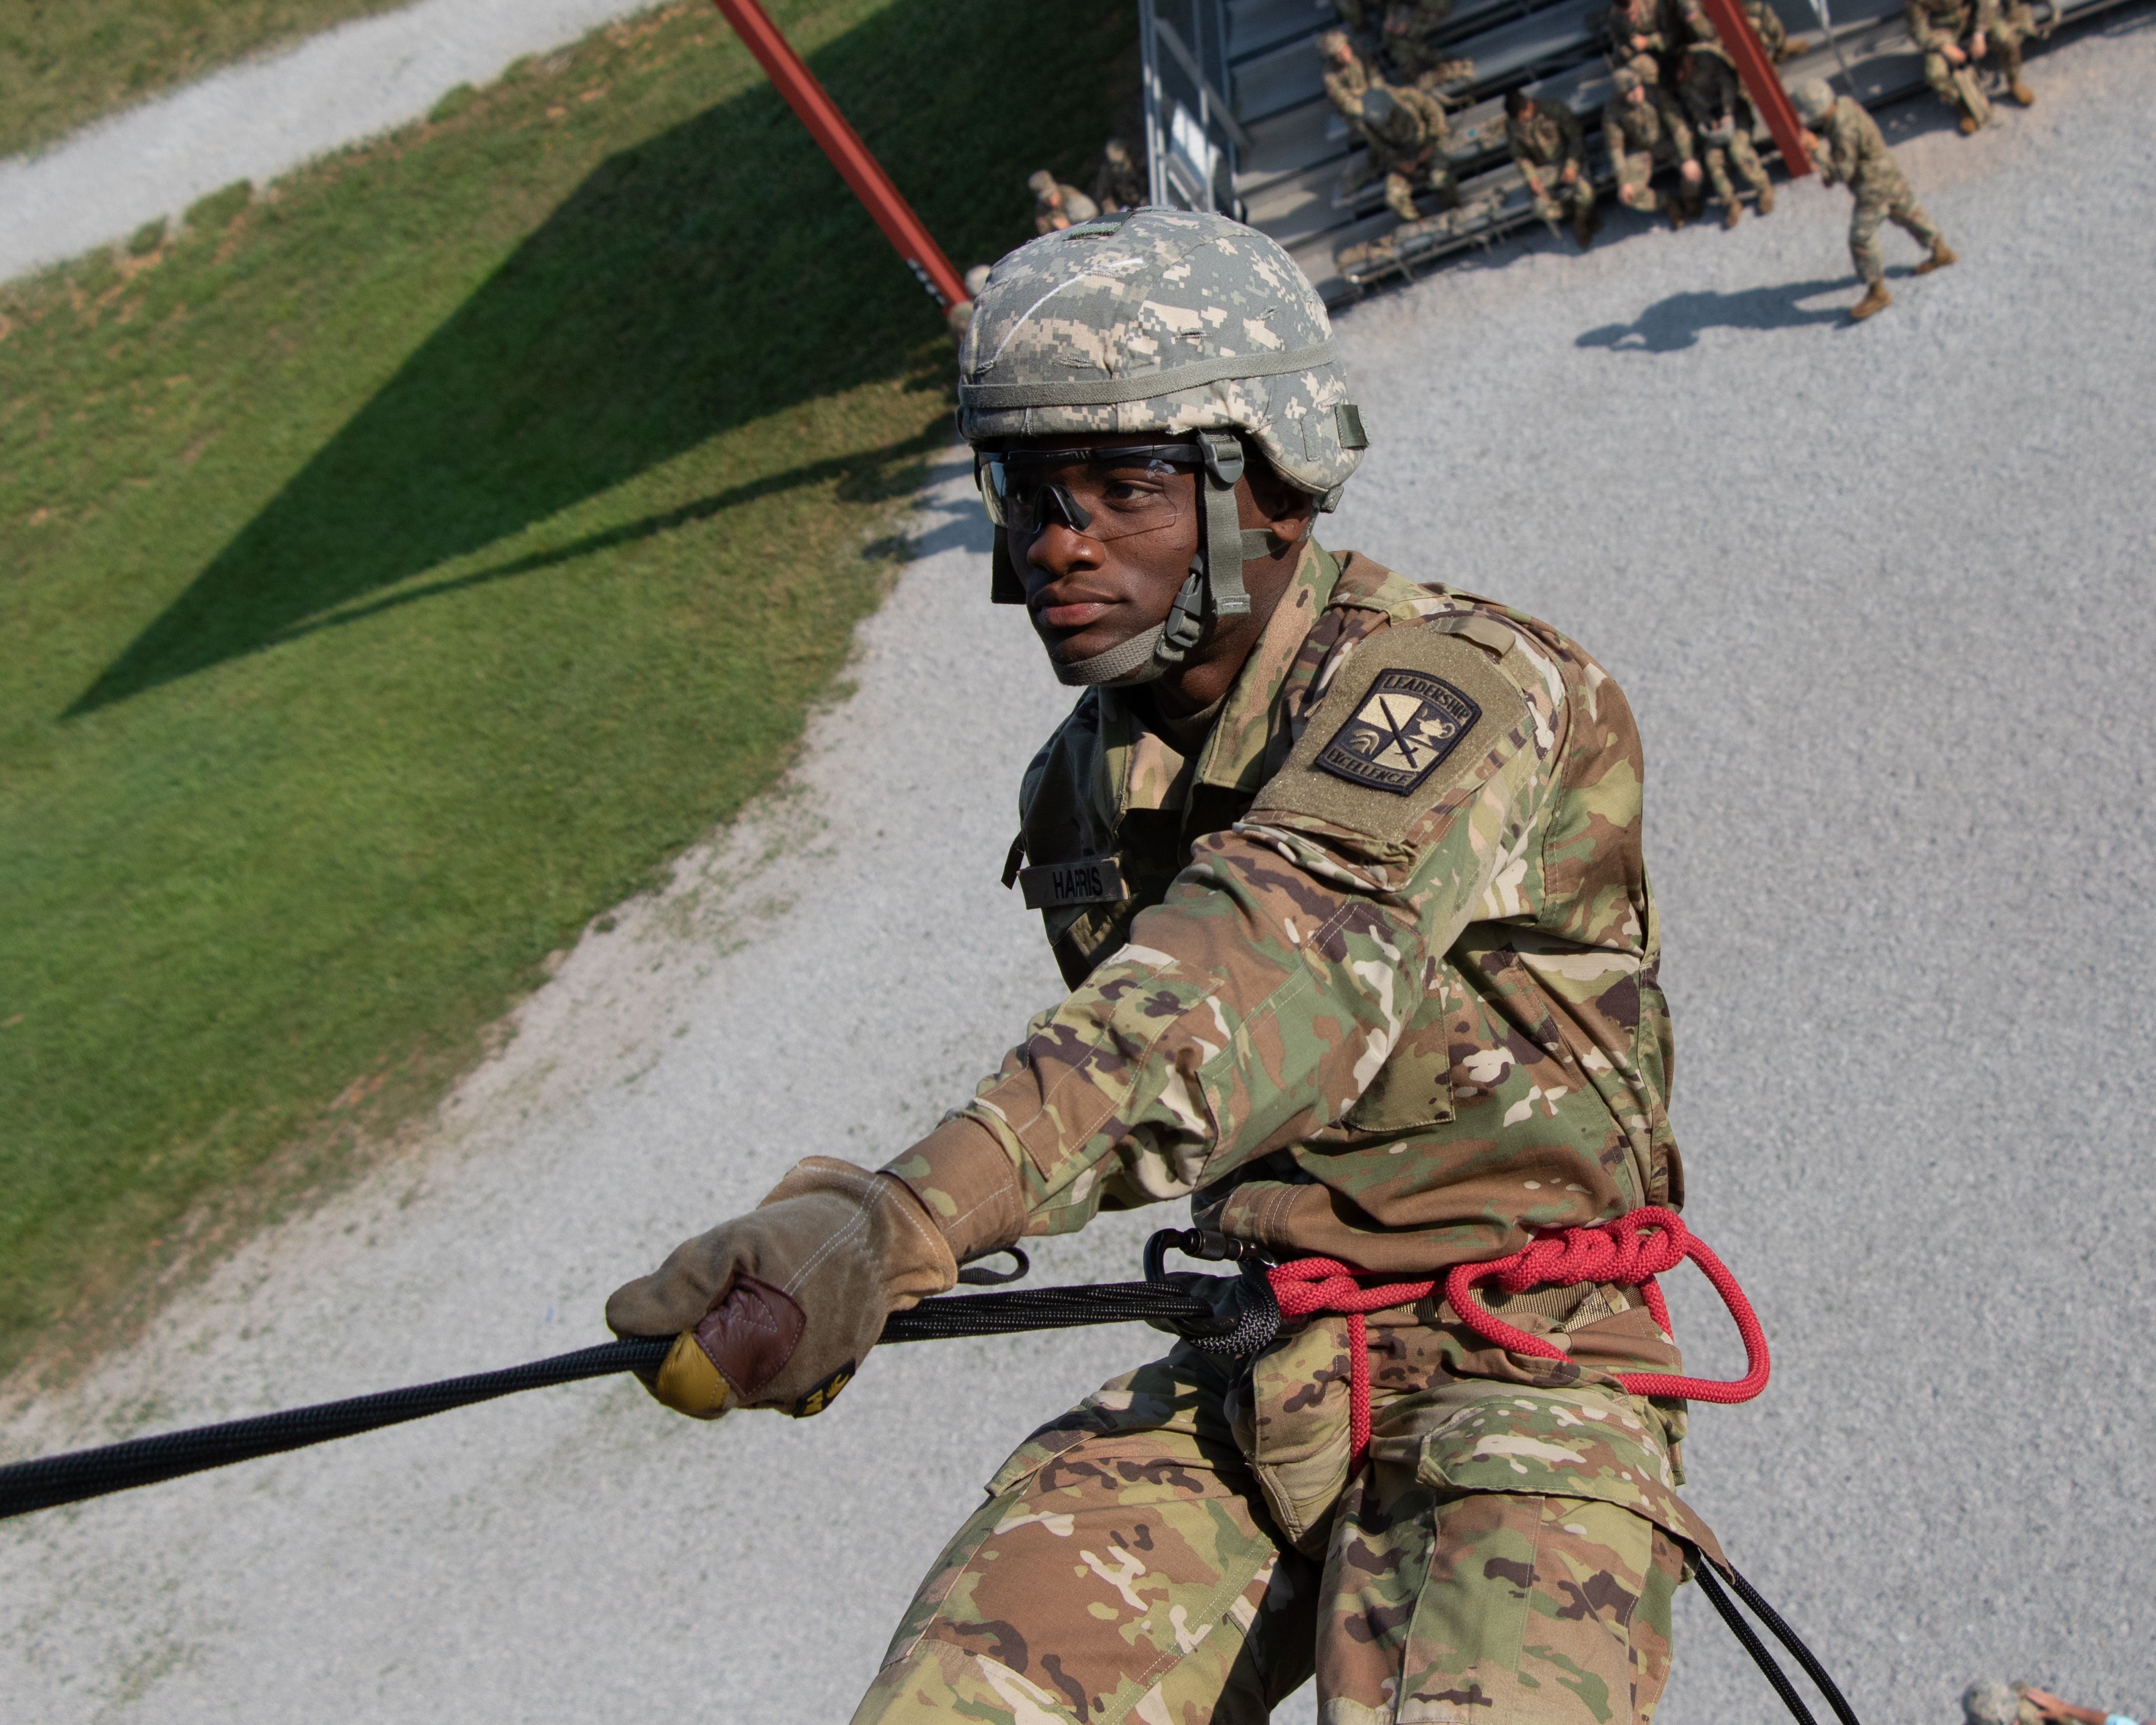 """A cadet of 6th Regiment, Advanced Camp, stands in an """"L"""" position as he prepares to rappel down the side of a tower at Fort Knox, Ky., July 3. (Griffin Amrein/Army)"""